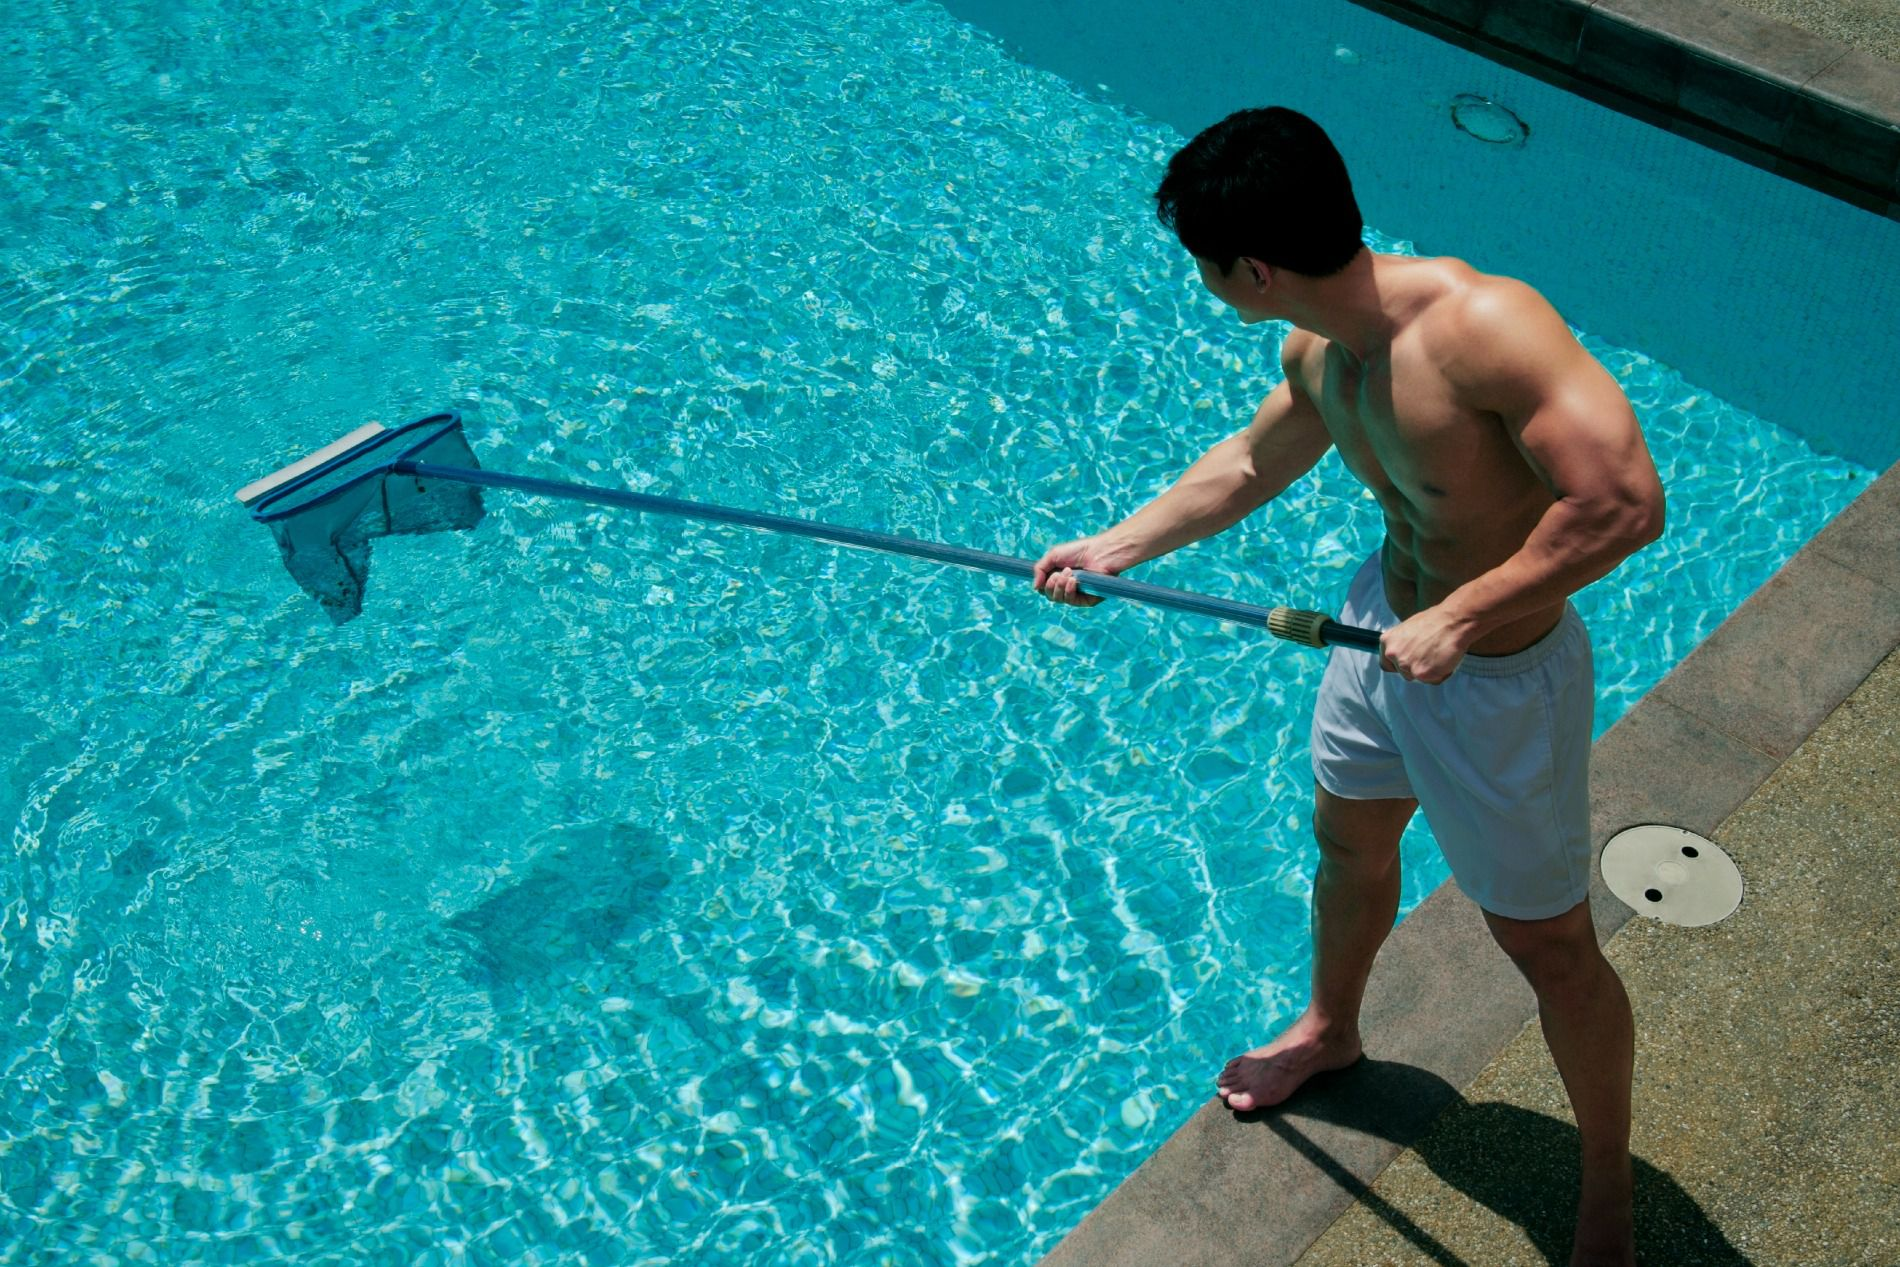 Swimming Pool Filtration Services : How to open a pool for the season